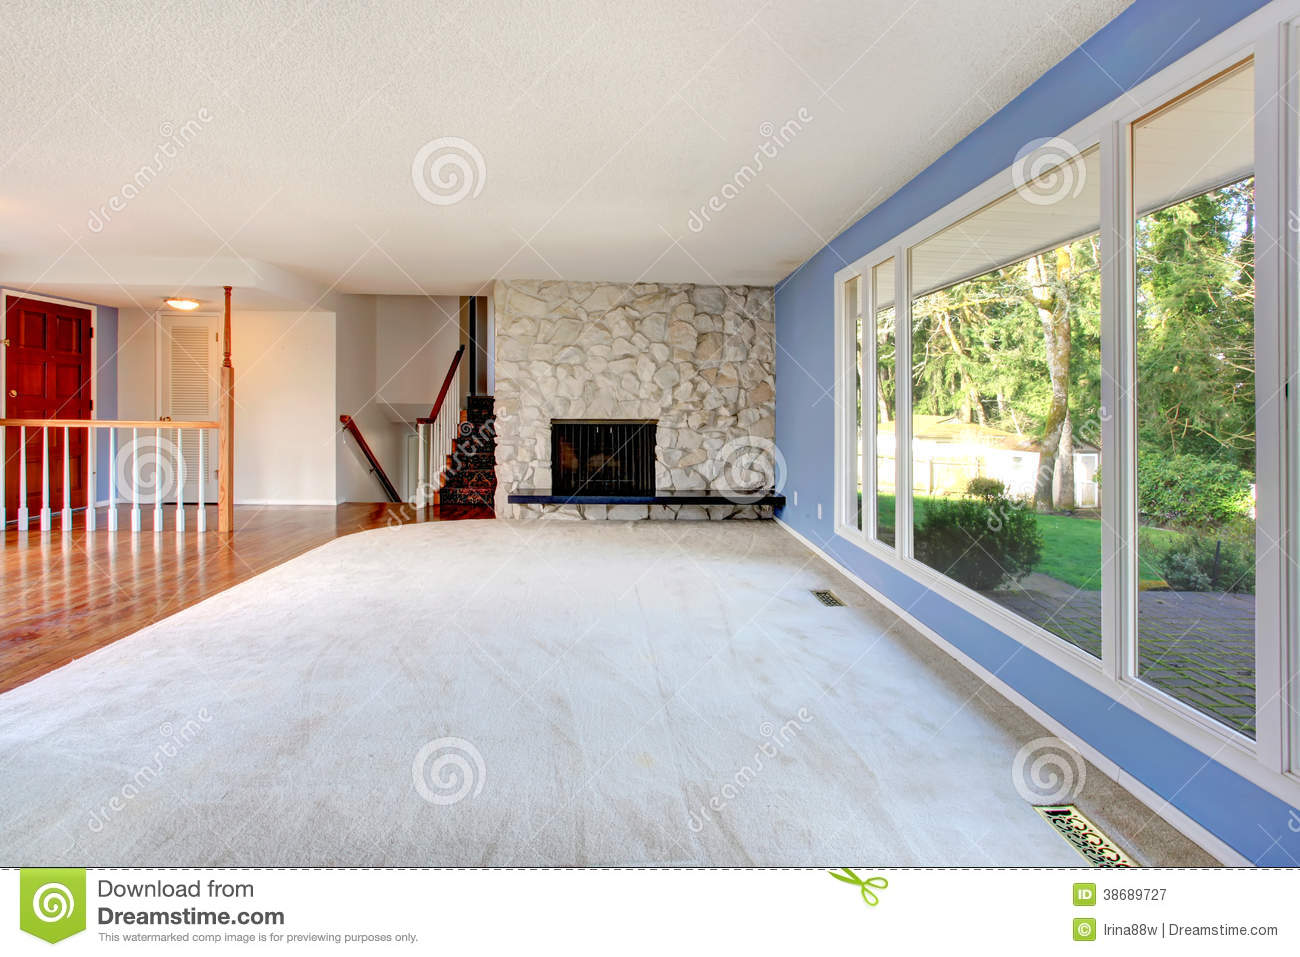 Big empty living rooms - Empty Beautiful Living Room With A Fireplace Royalty Free Stock Photography